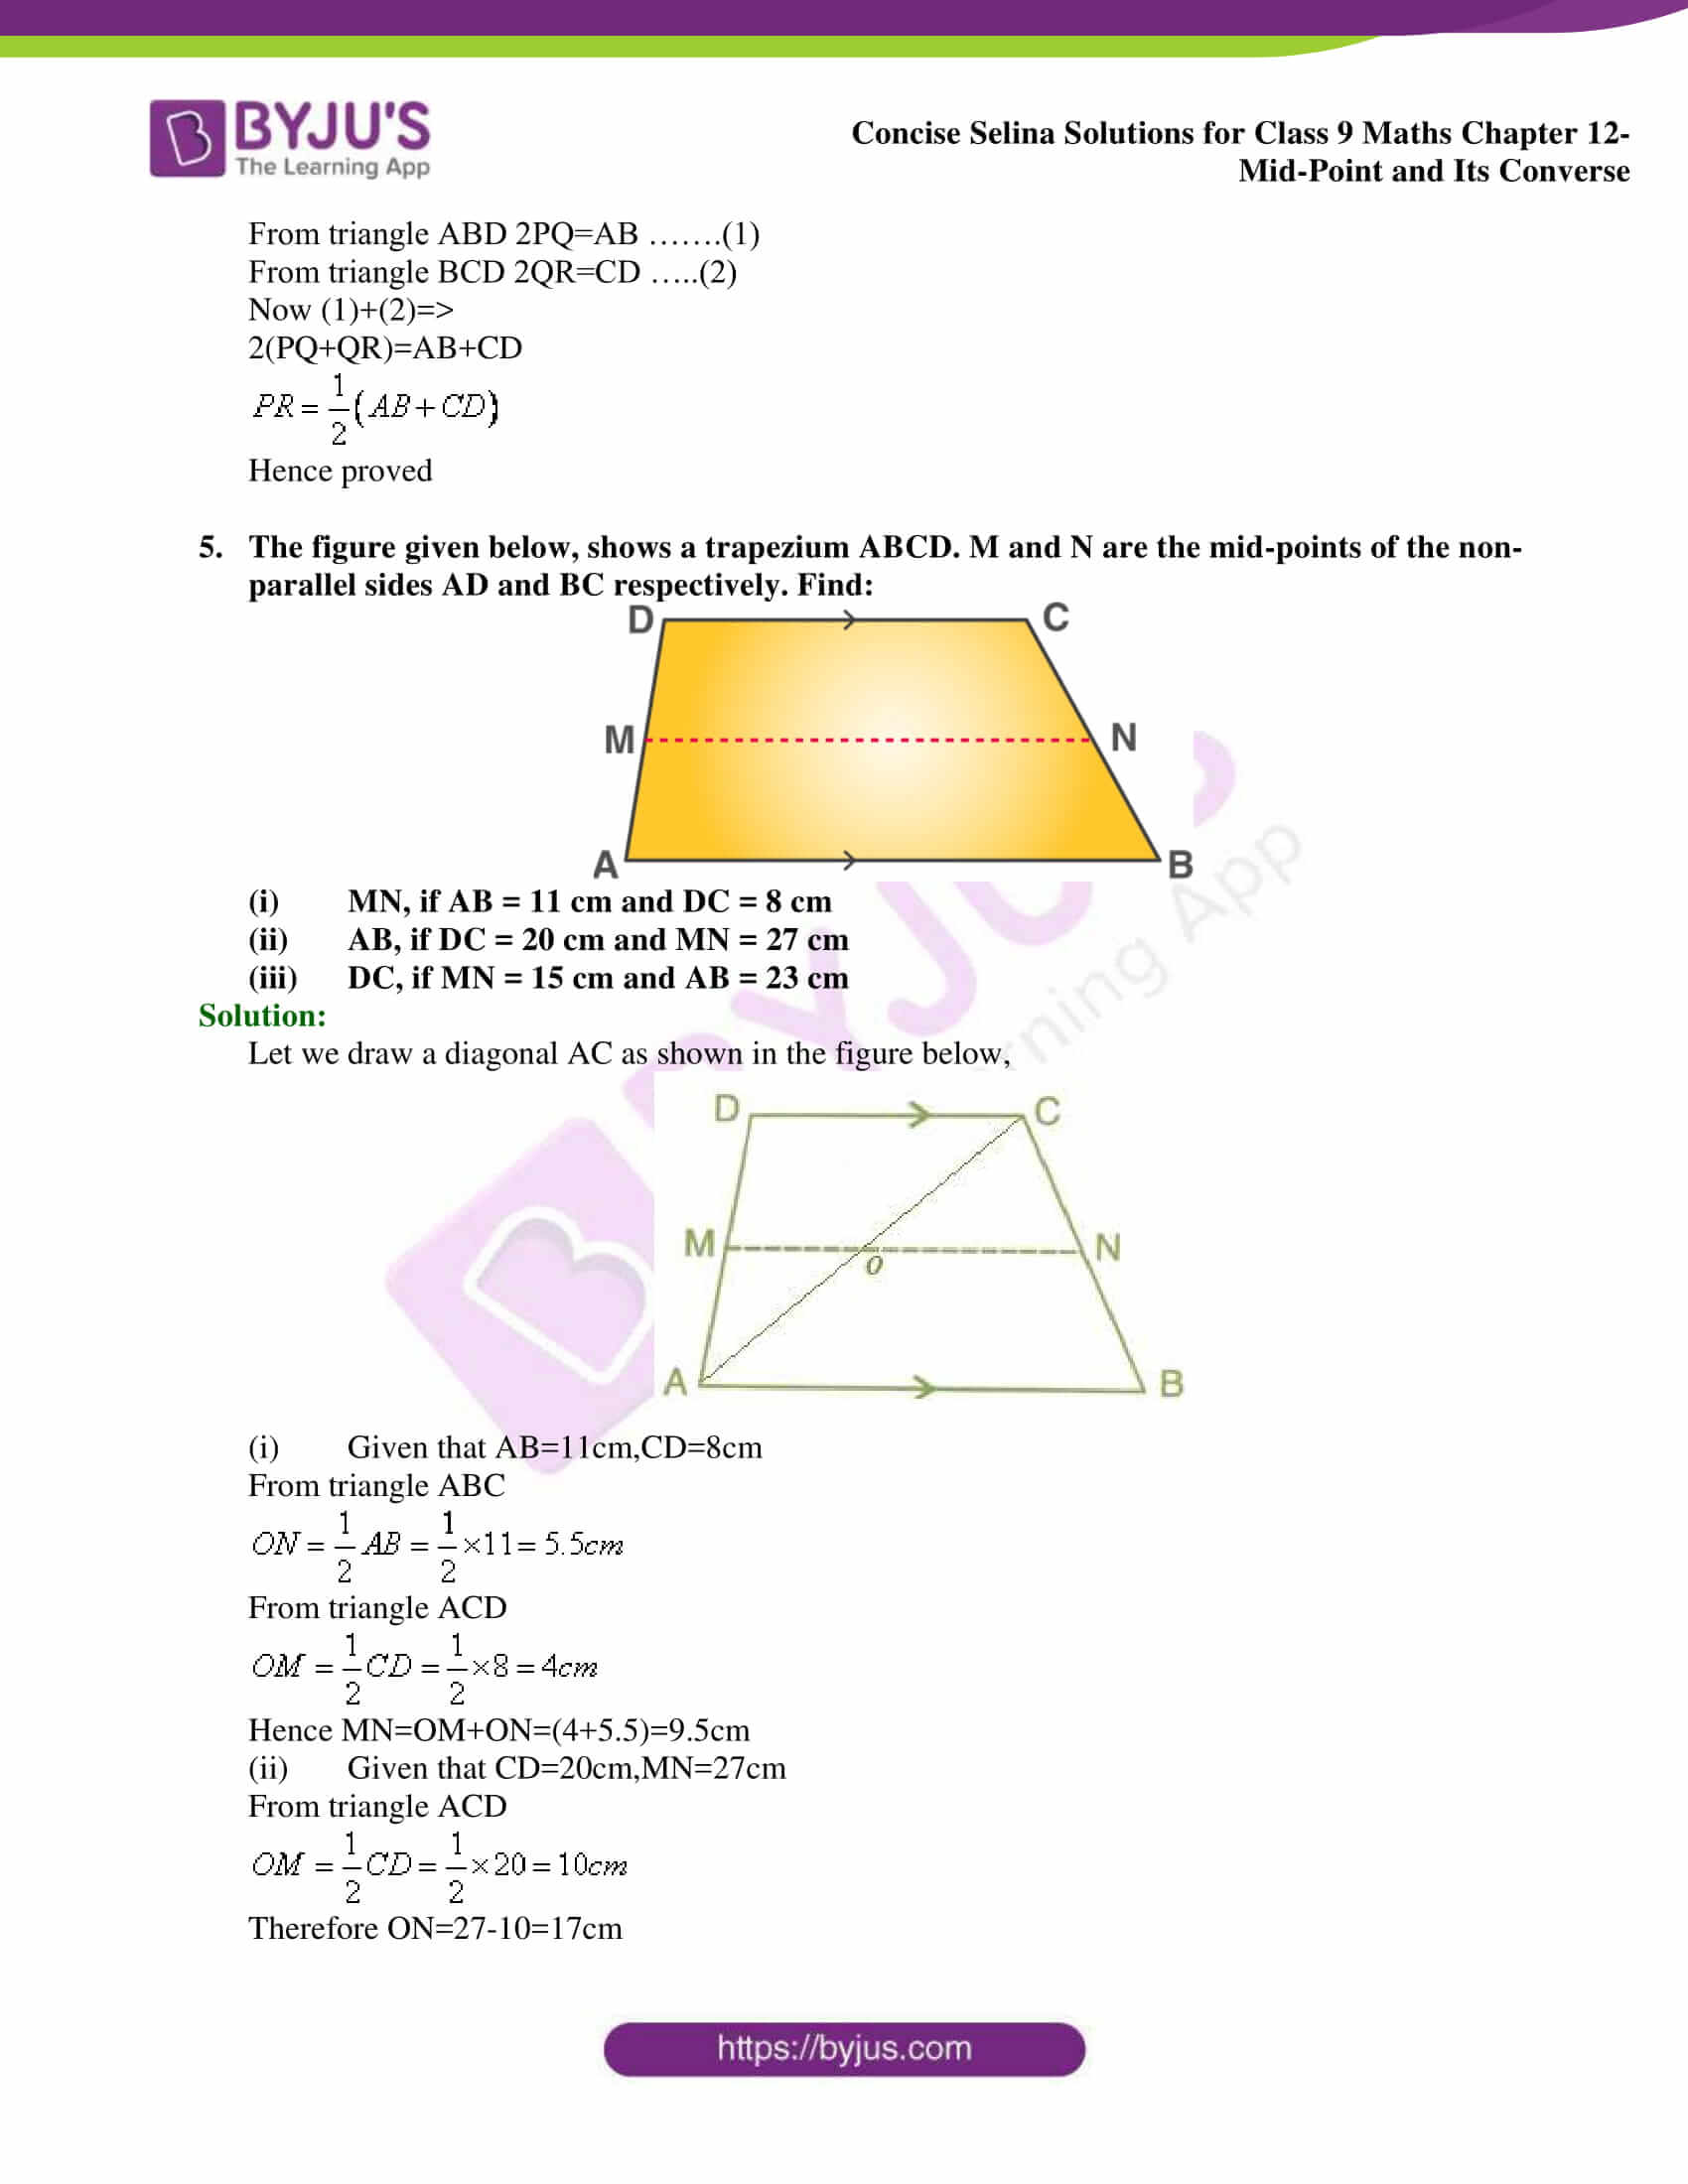 selina Solutions for Class 9 Maths Chapter 12 part 03